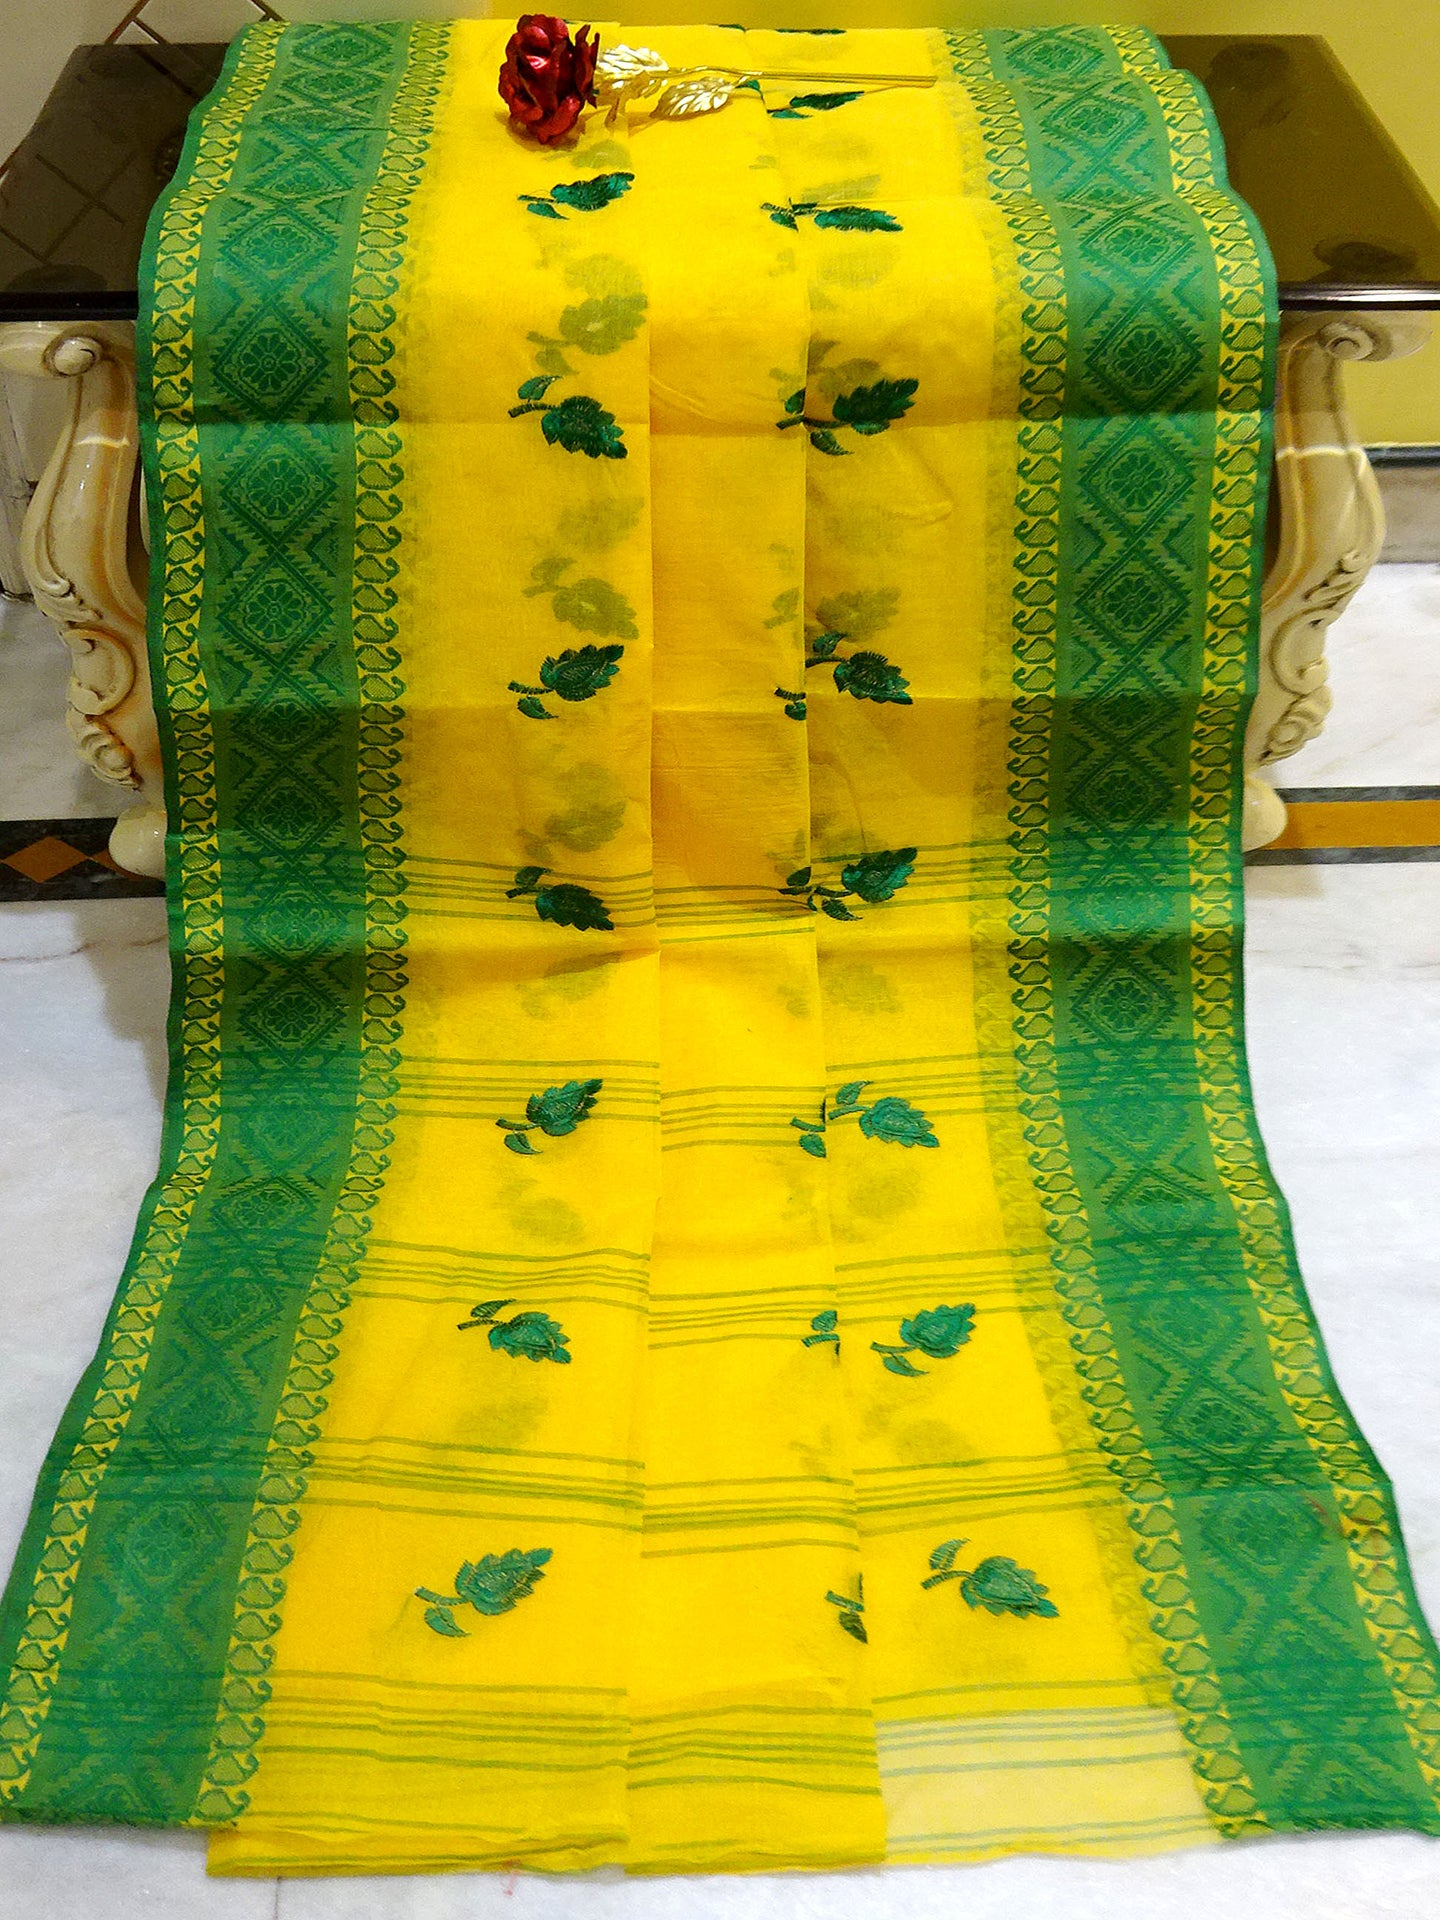 Bengal Handloom Cotton Saree with Embroidery Work in Bright Yellow and Green